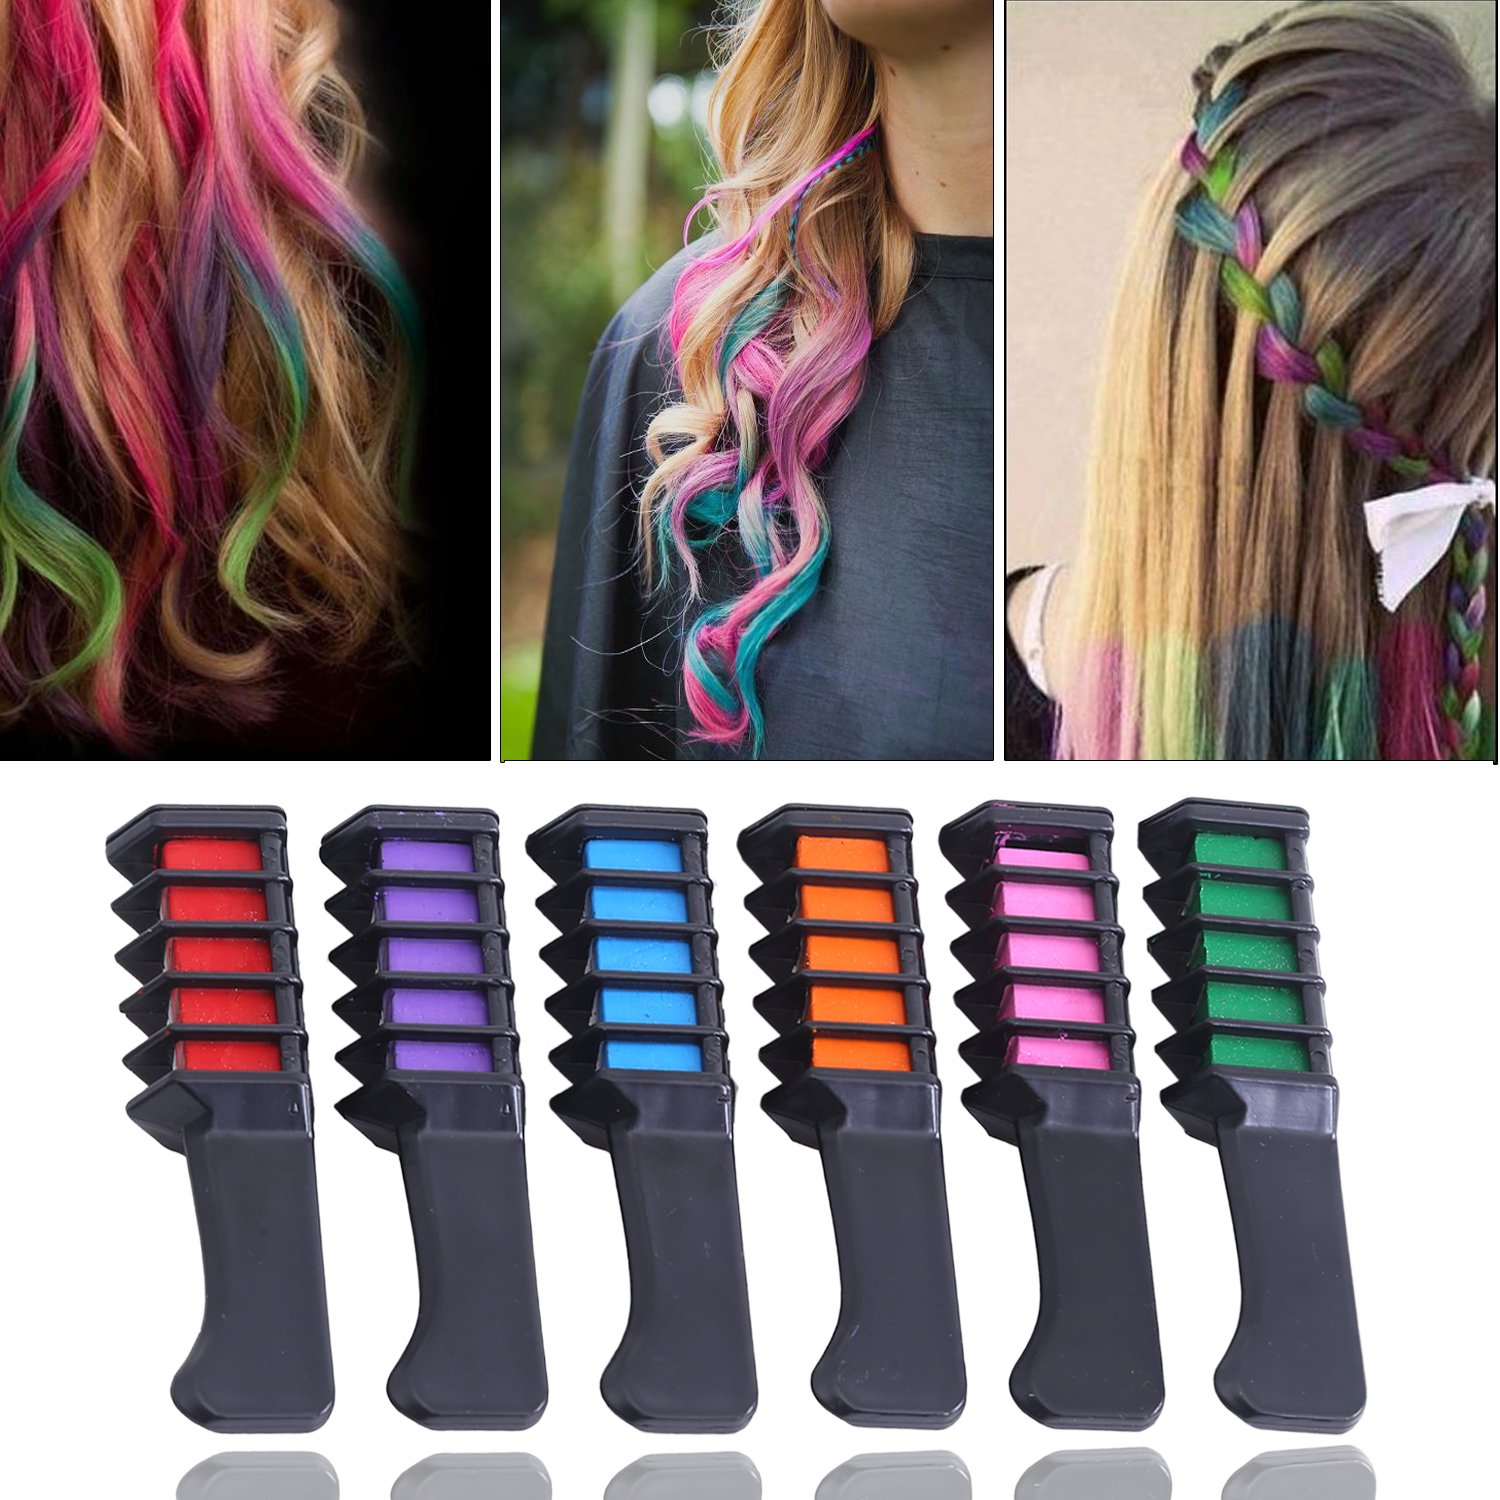 Hair Spray Chalk Comb Temporary Hair Color Dye Comb for Girls, Party,  Cosplay (6 Color)